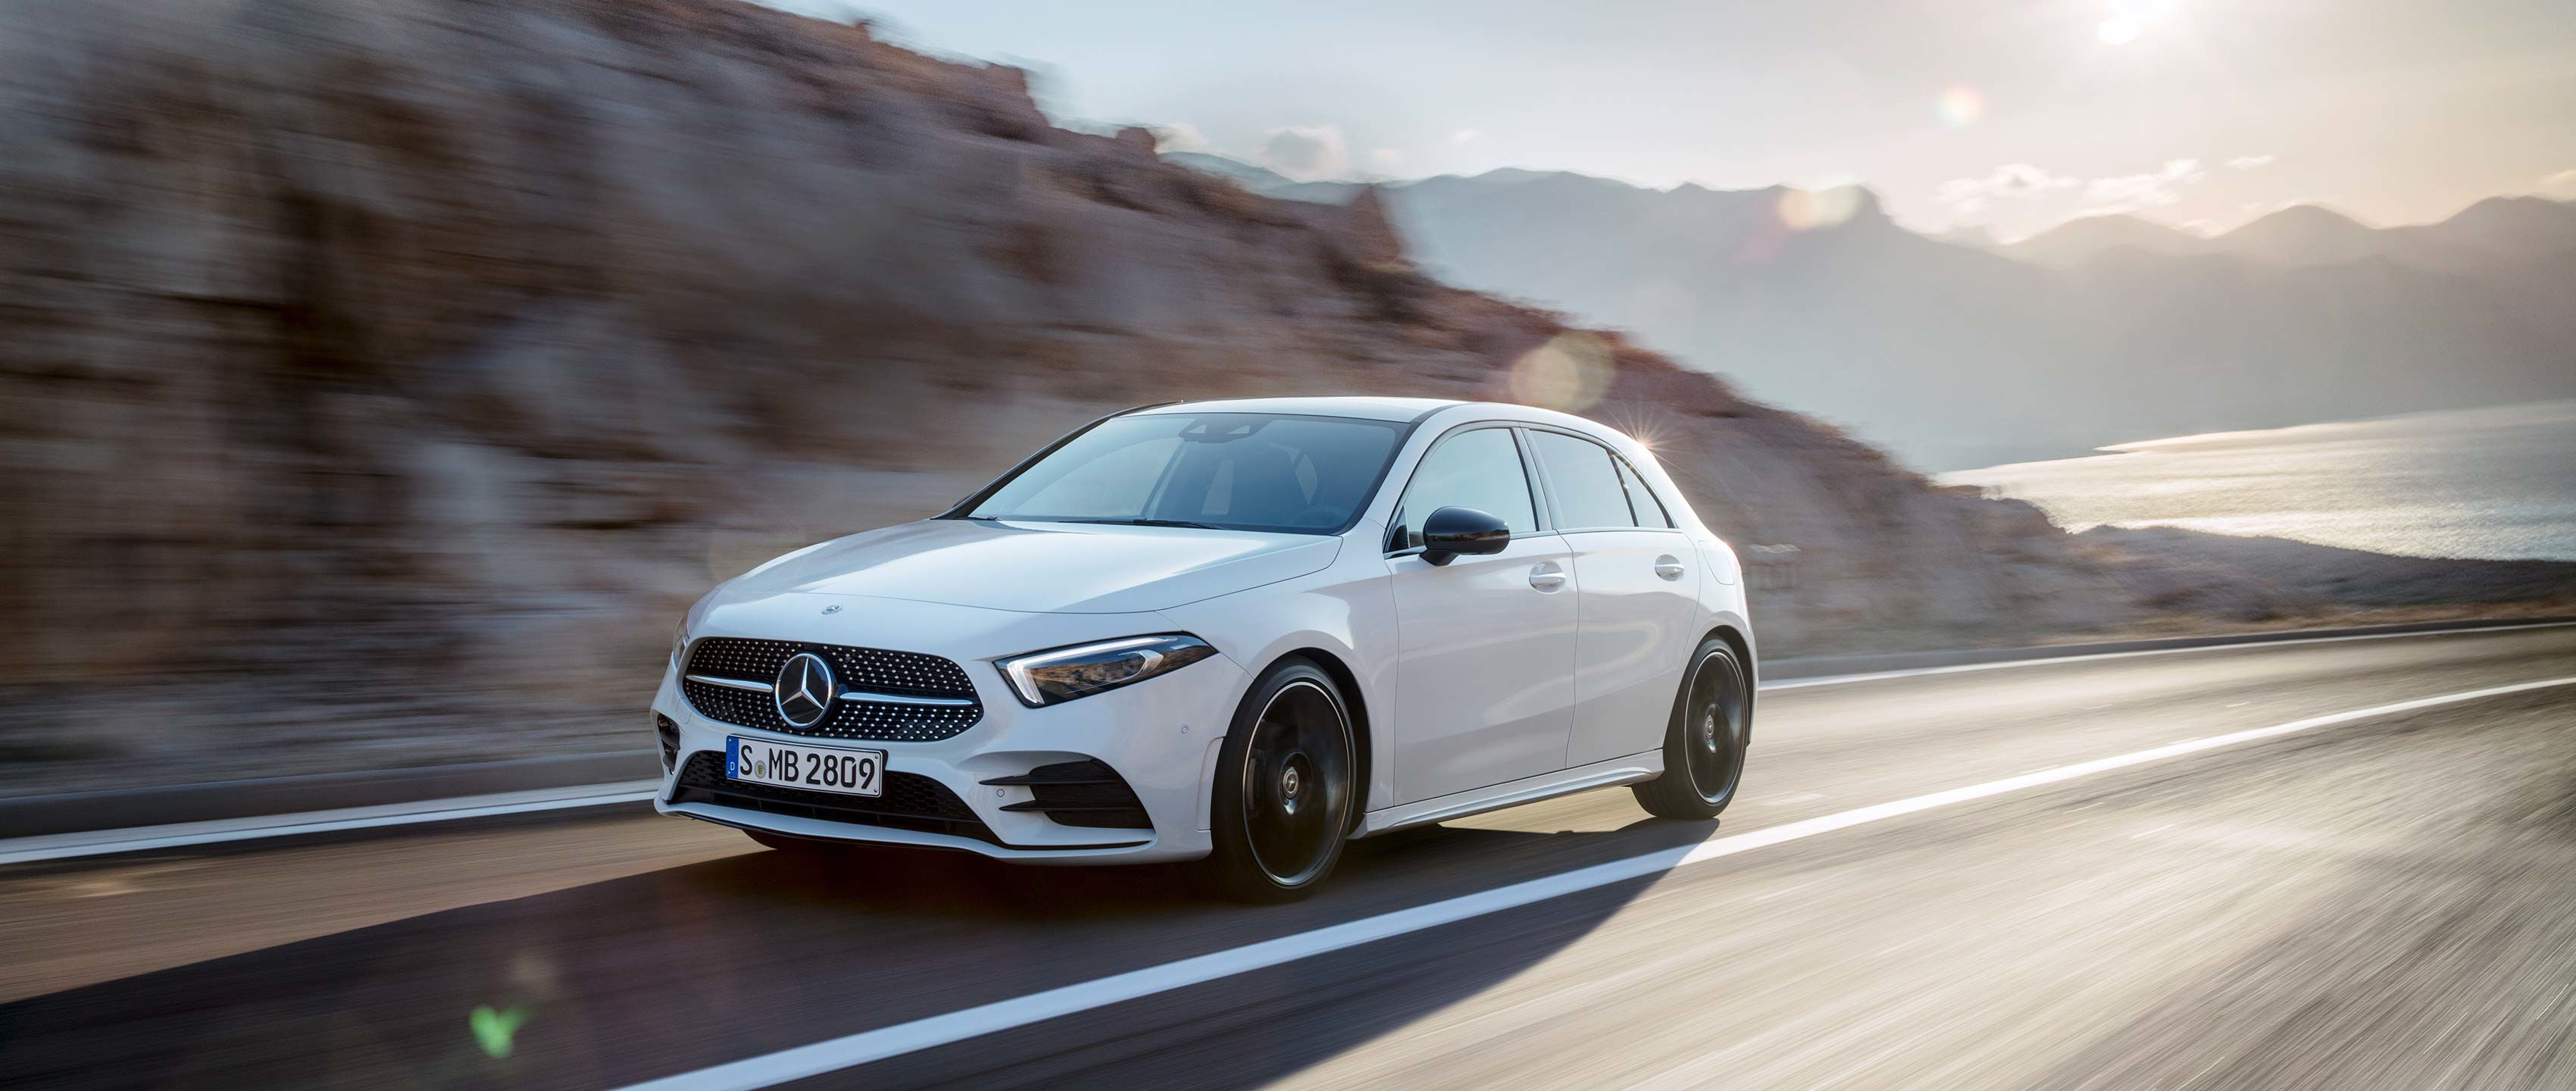 Mercedes-Benz A-Class: Stories, Pictures and Videos about the new A ...